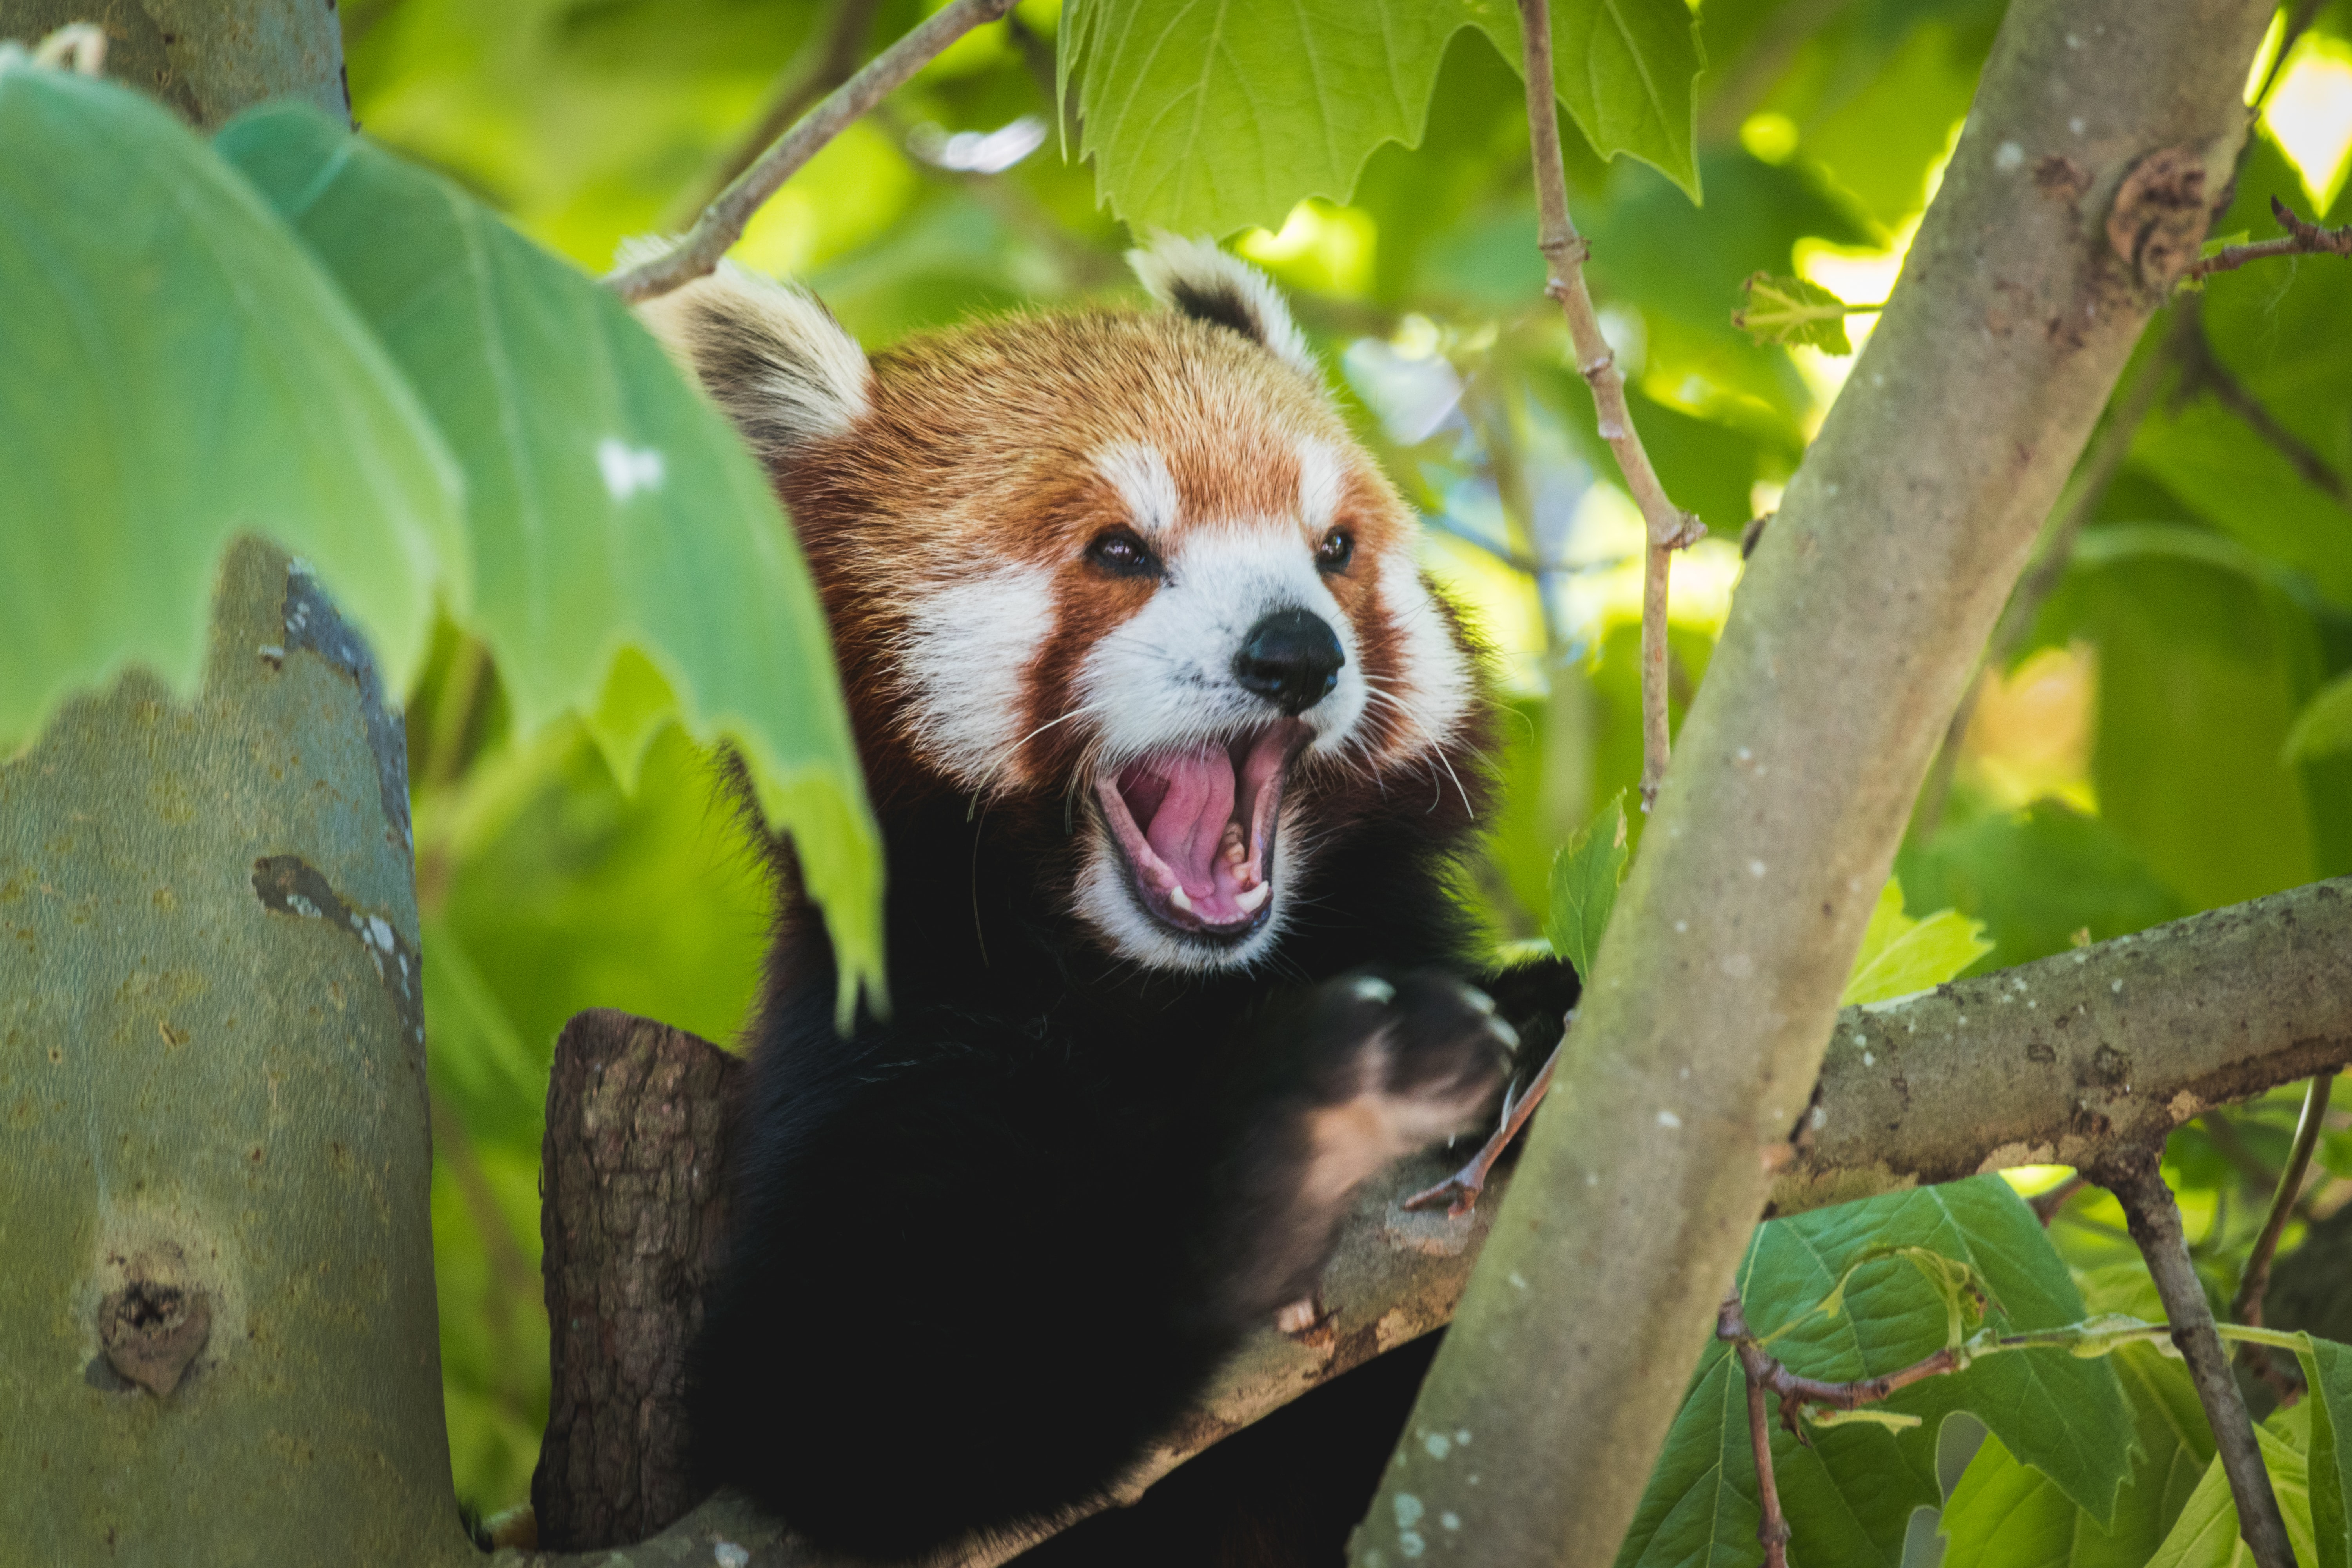 55965 download wallpaper Animals, Red Panda, Panda, Funny, Protruding Tongue, Tongue Stuck Out screensavers and pictures for free